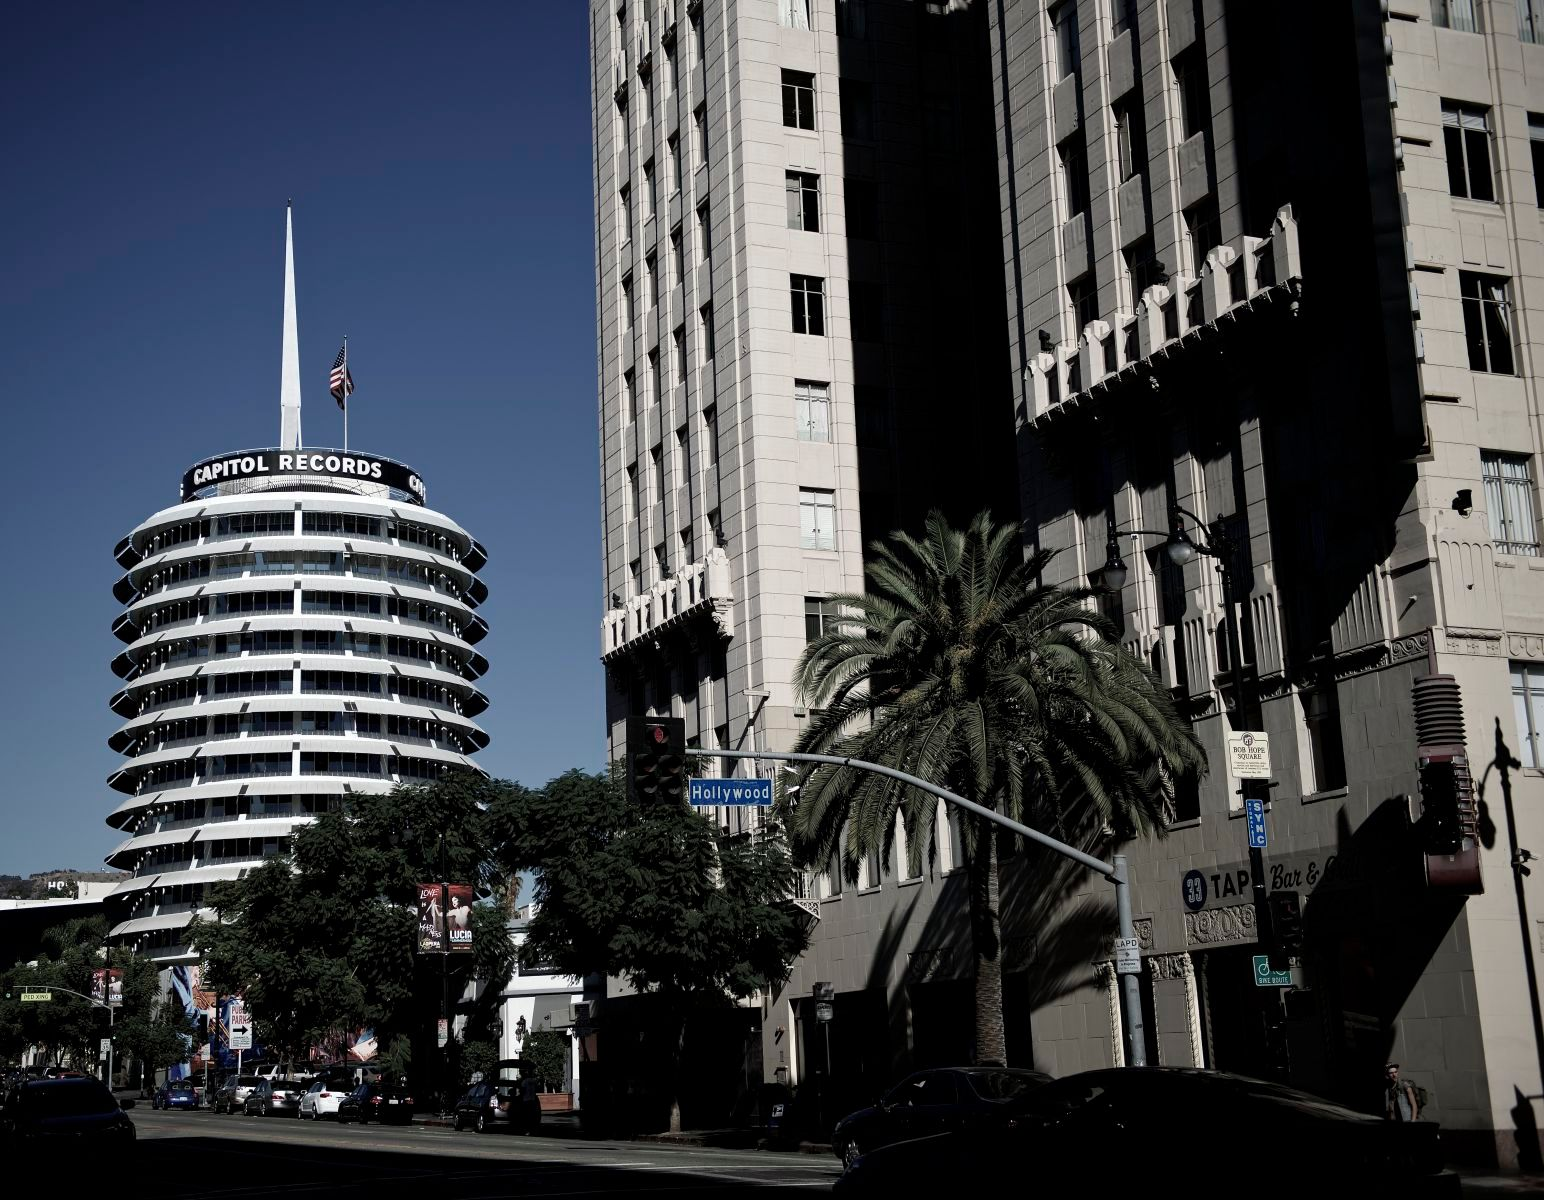 ''Capitol records''